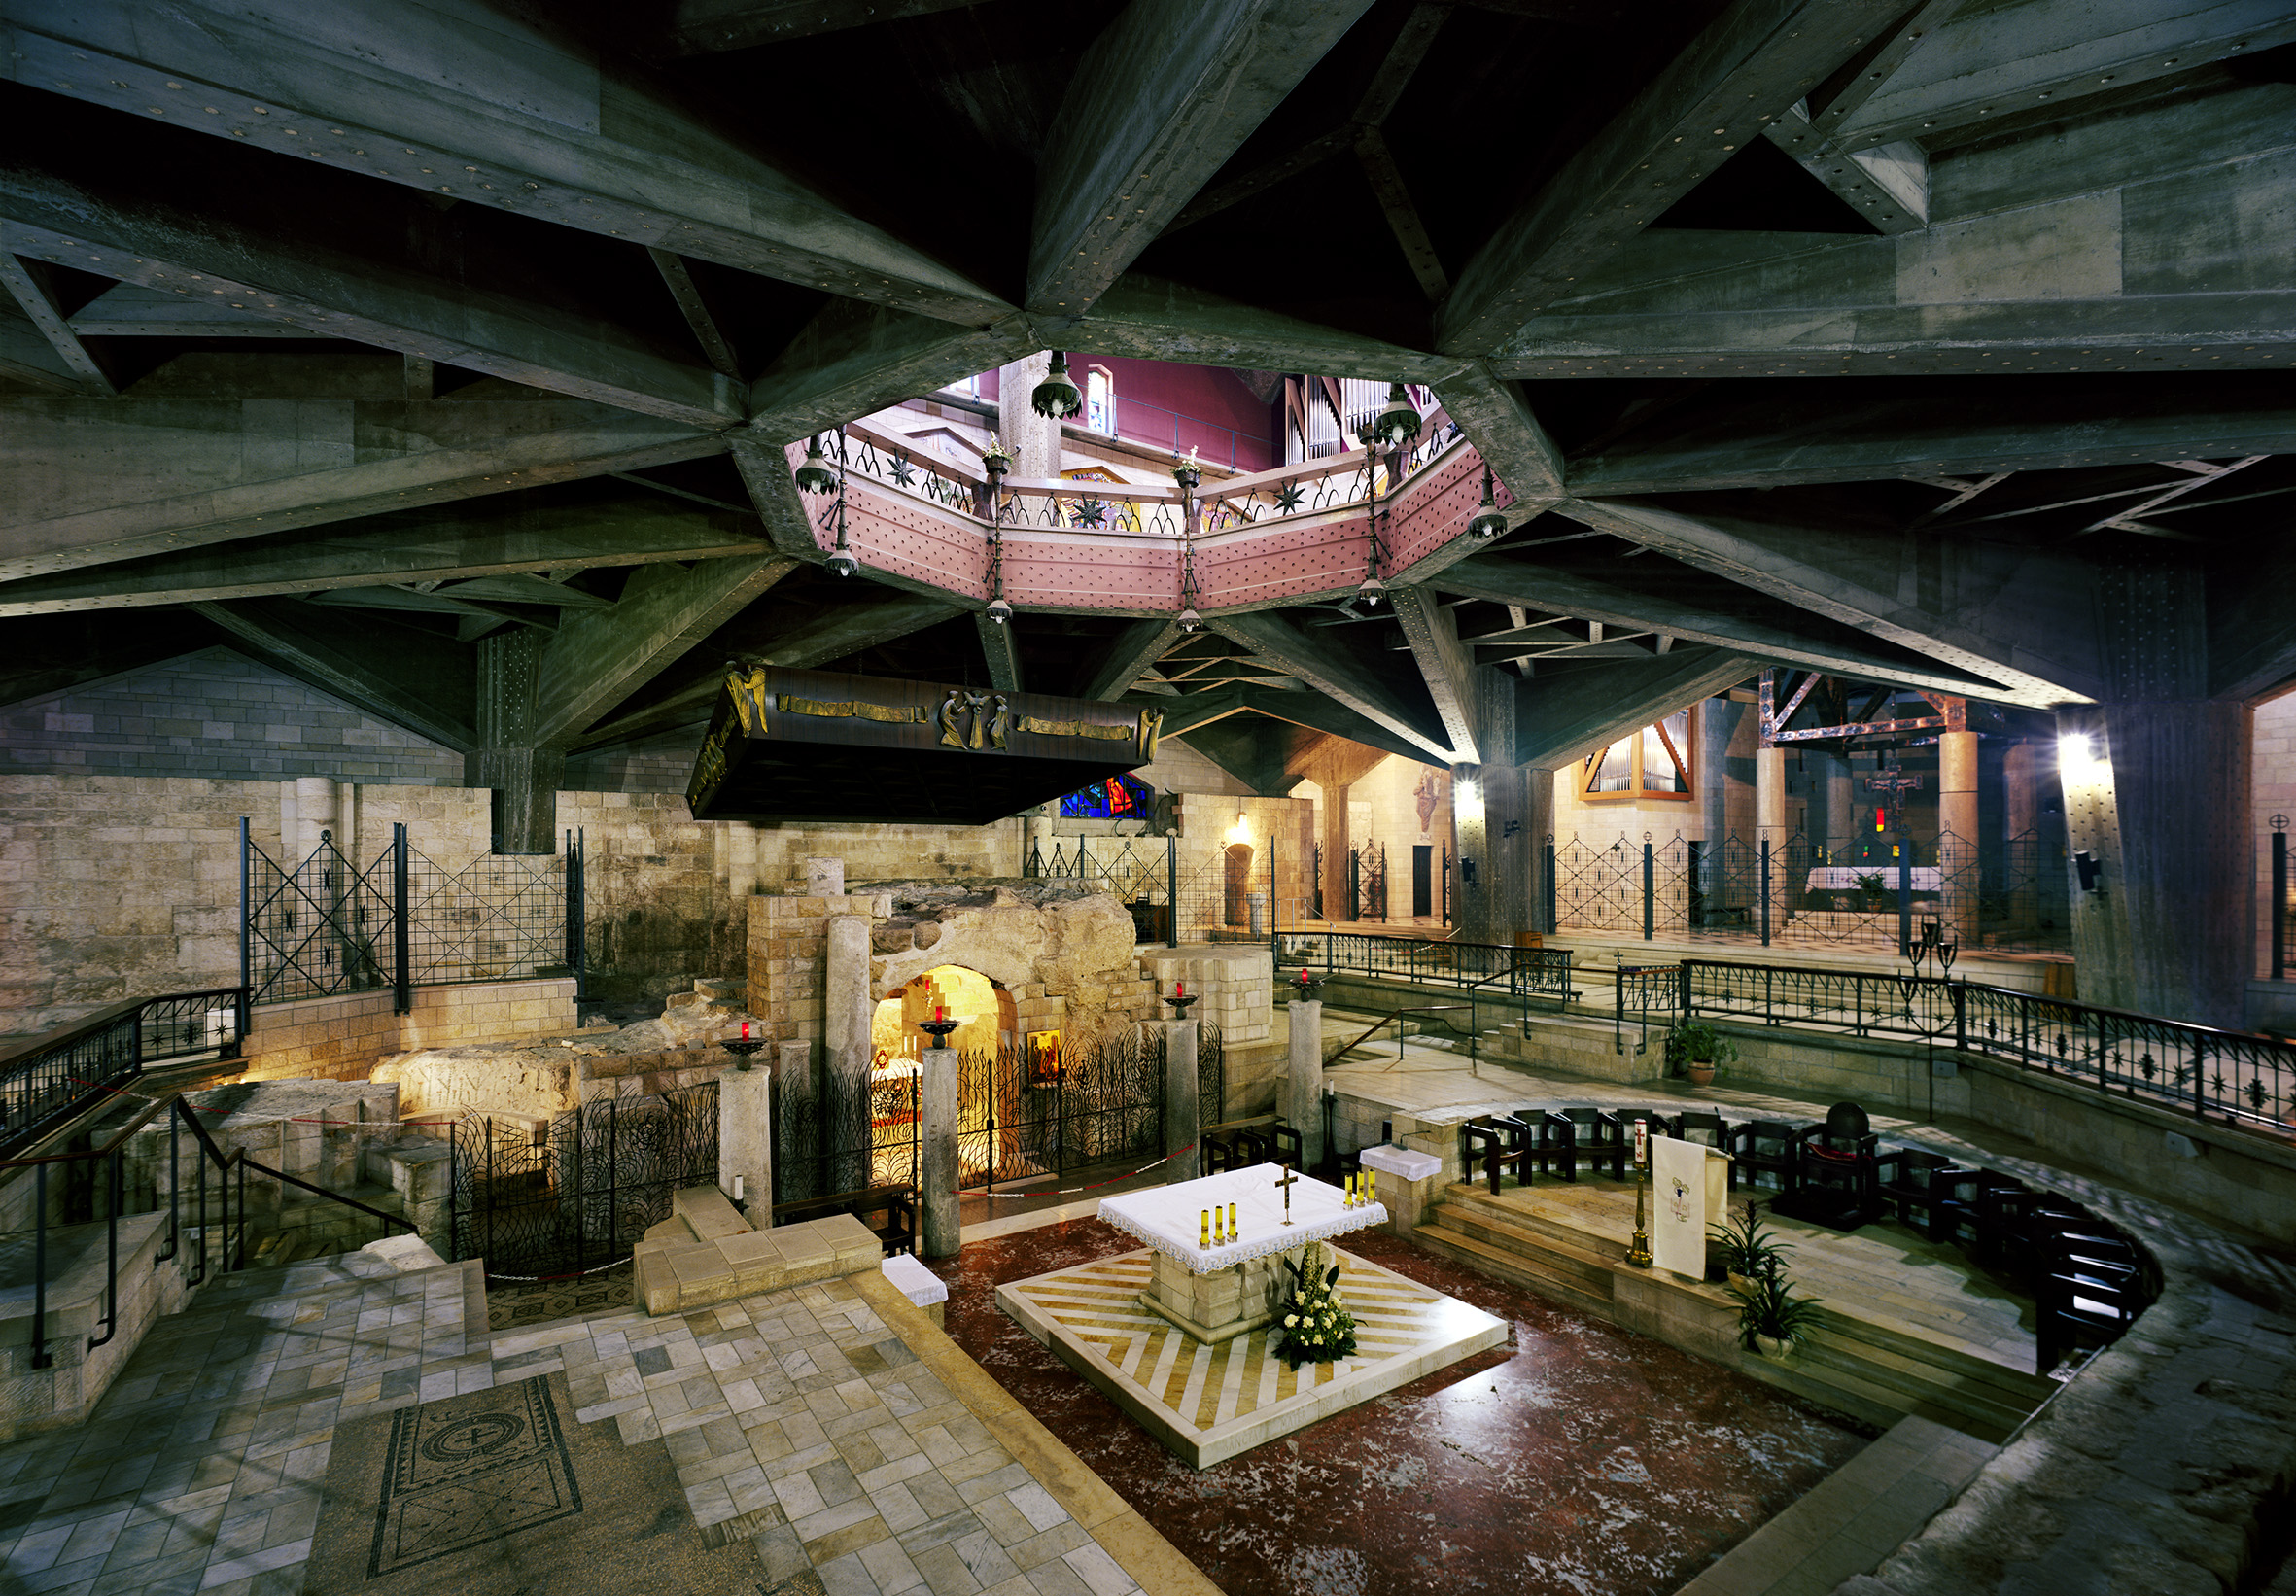 Thomas Struth, Basilica of the Annunciation, Nazareth, 2014.